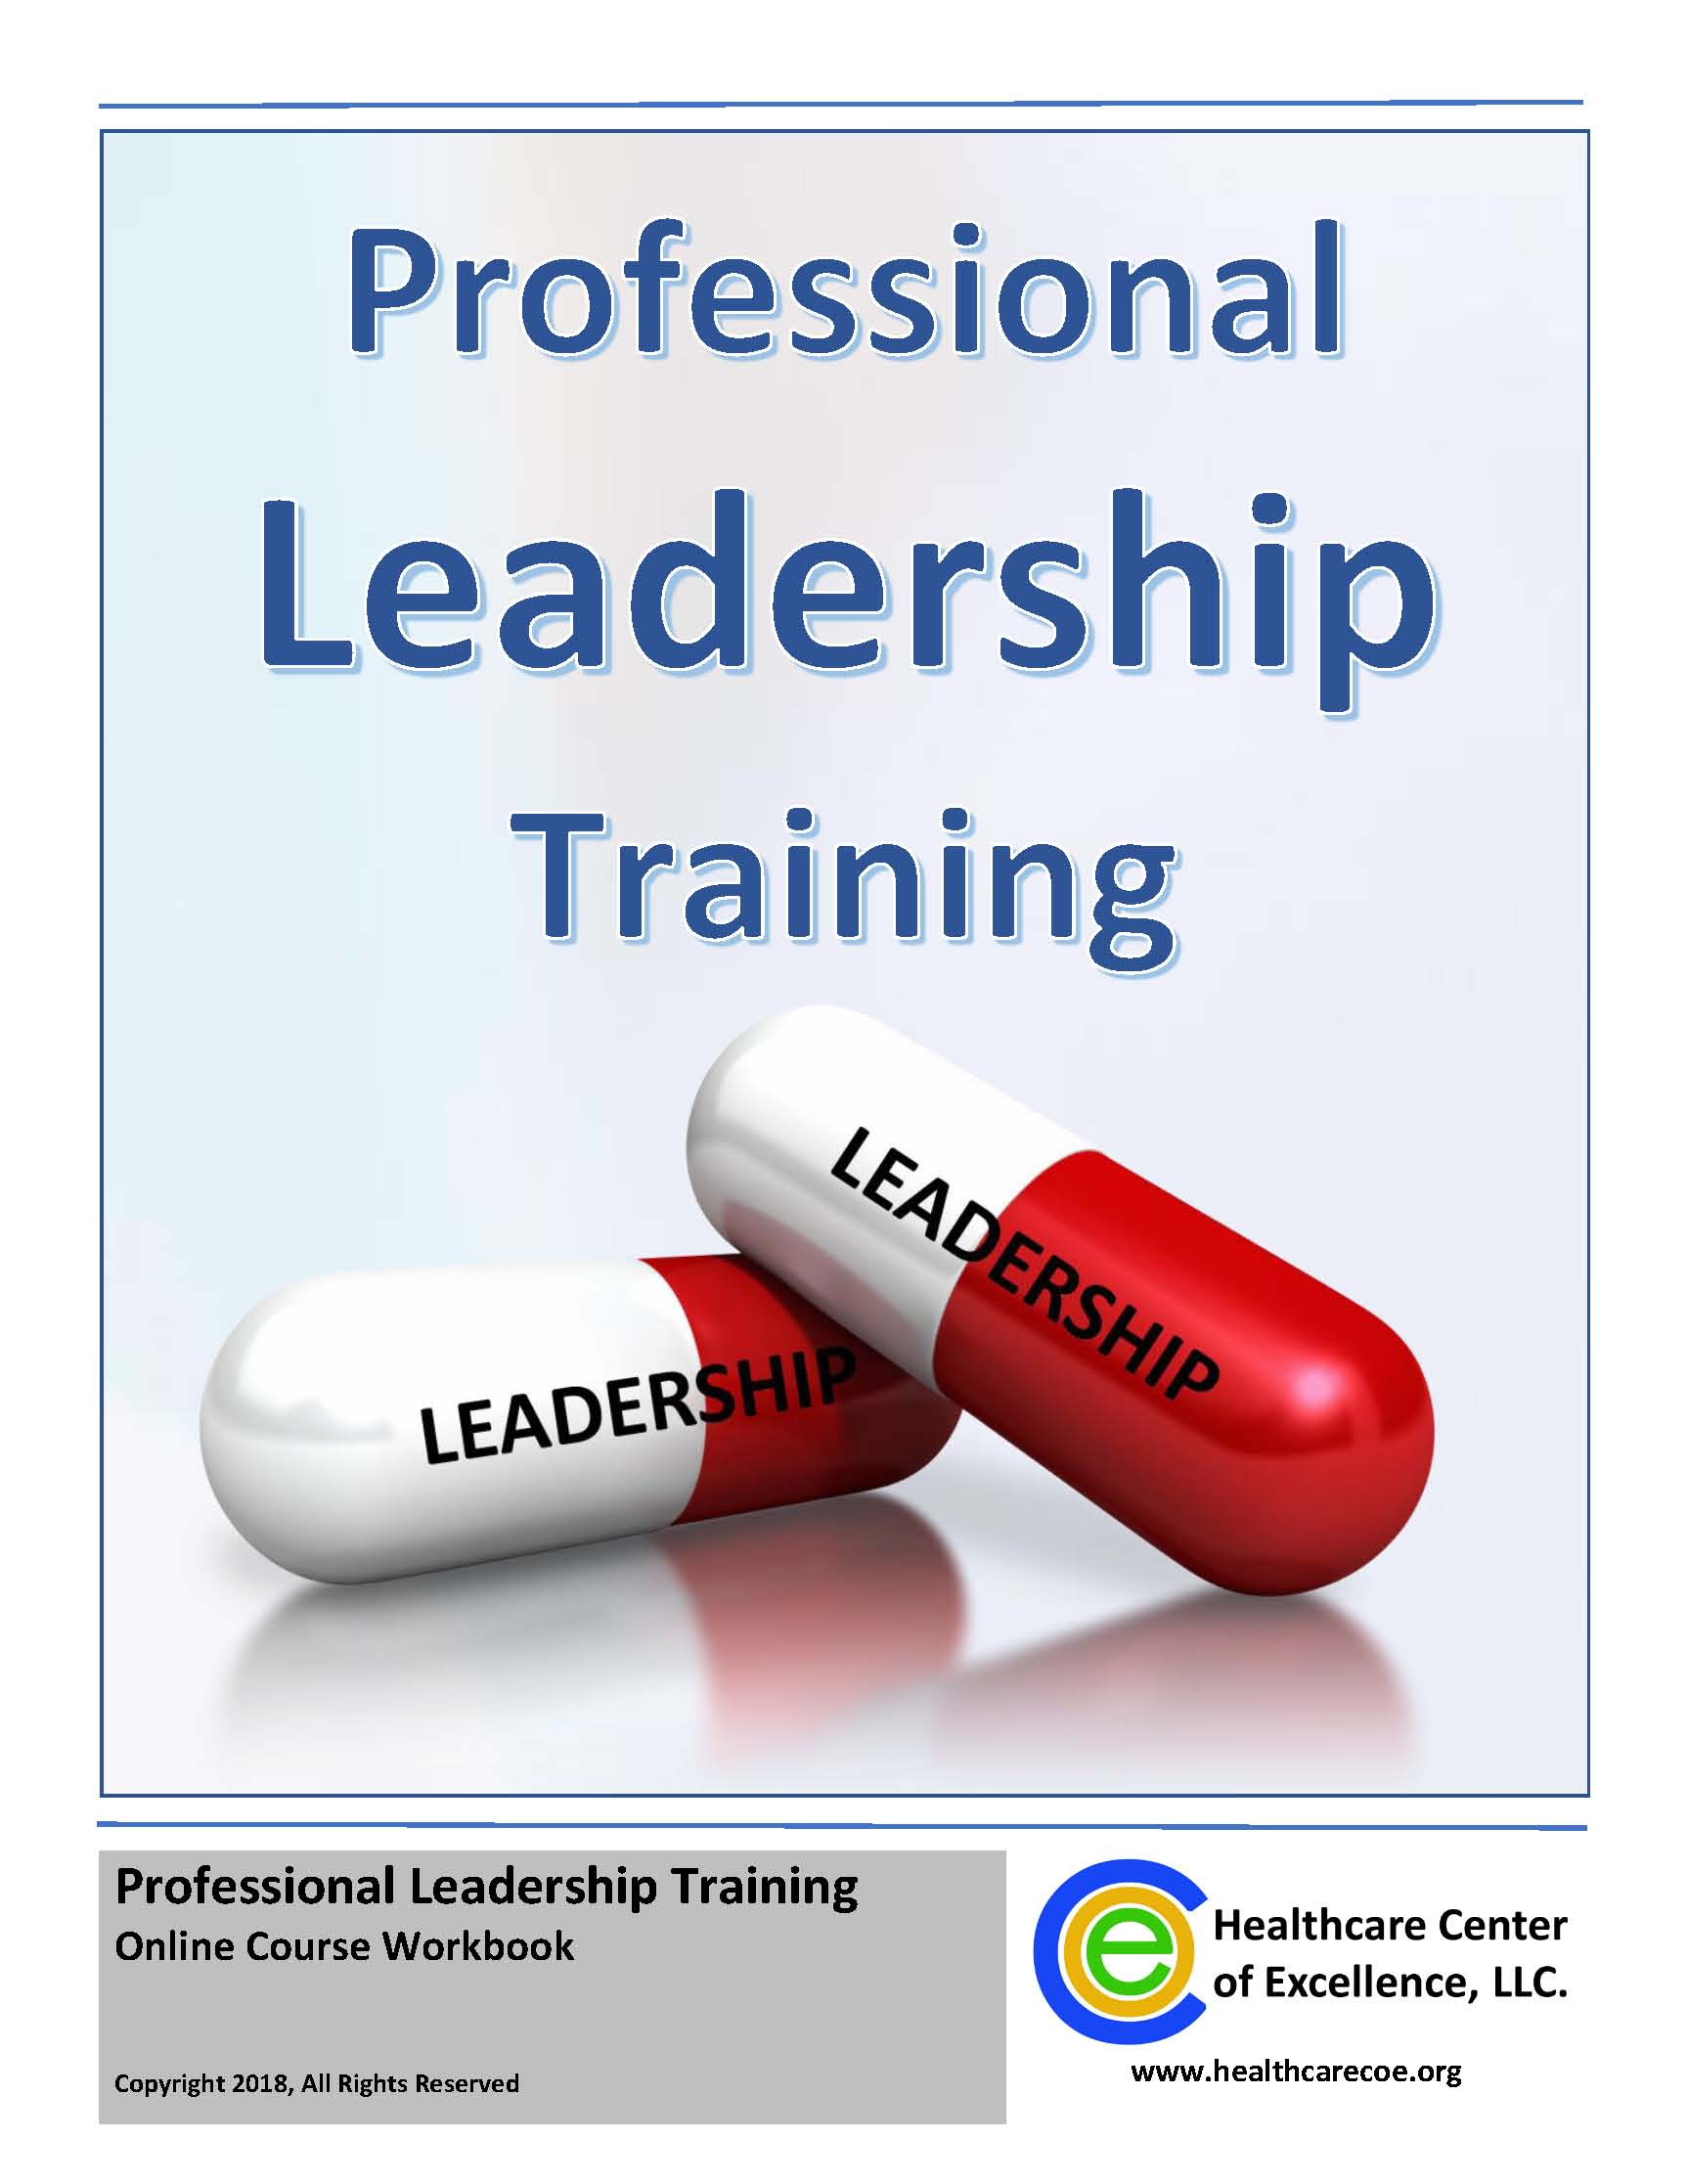 Professional Leadership Online Guided-Study Program - (Cohort #8, Starts 7/15/19)